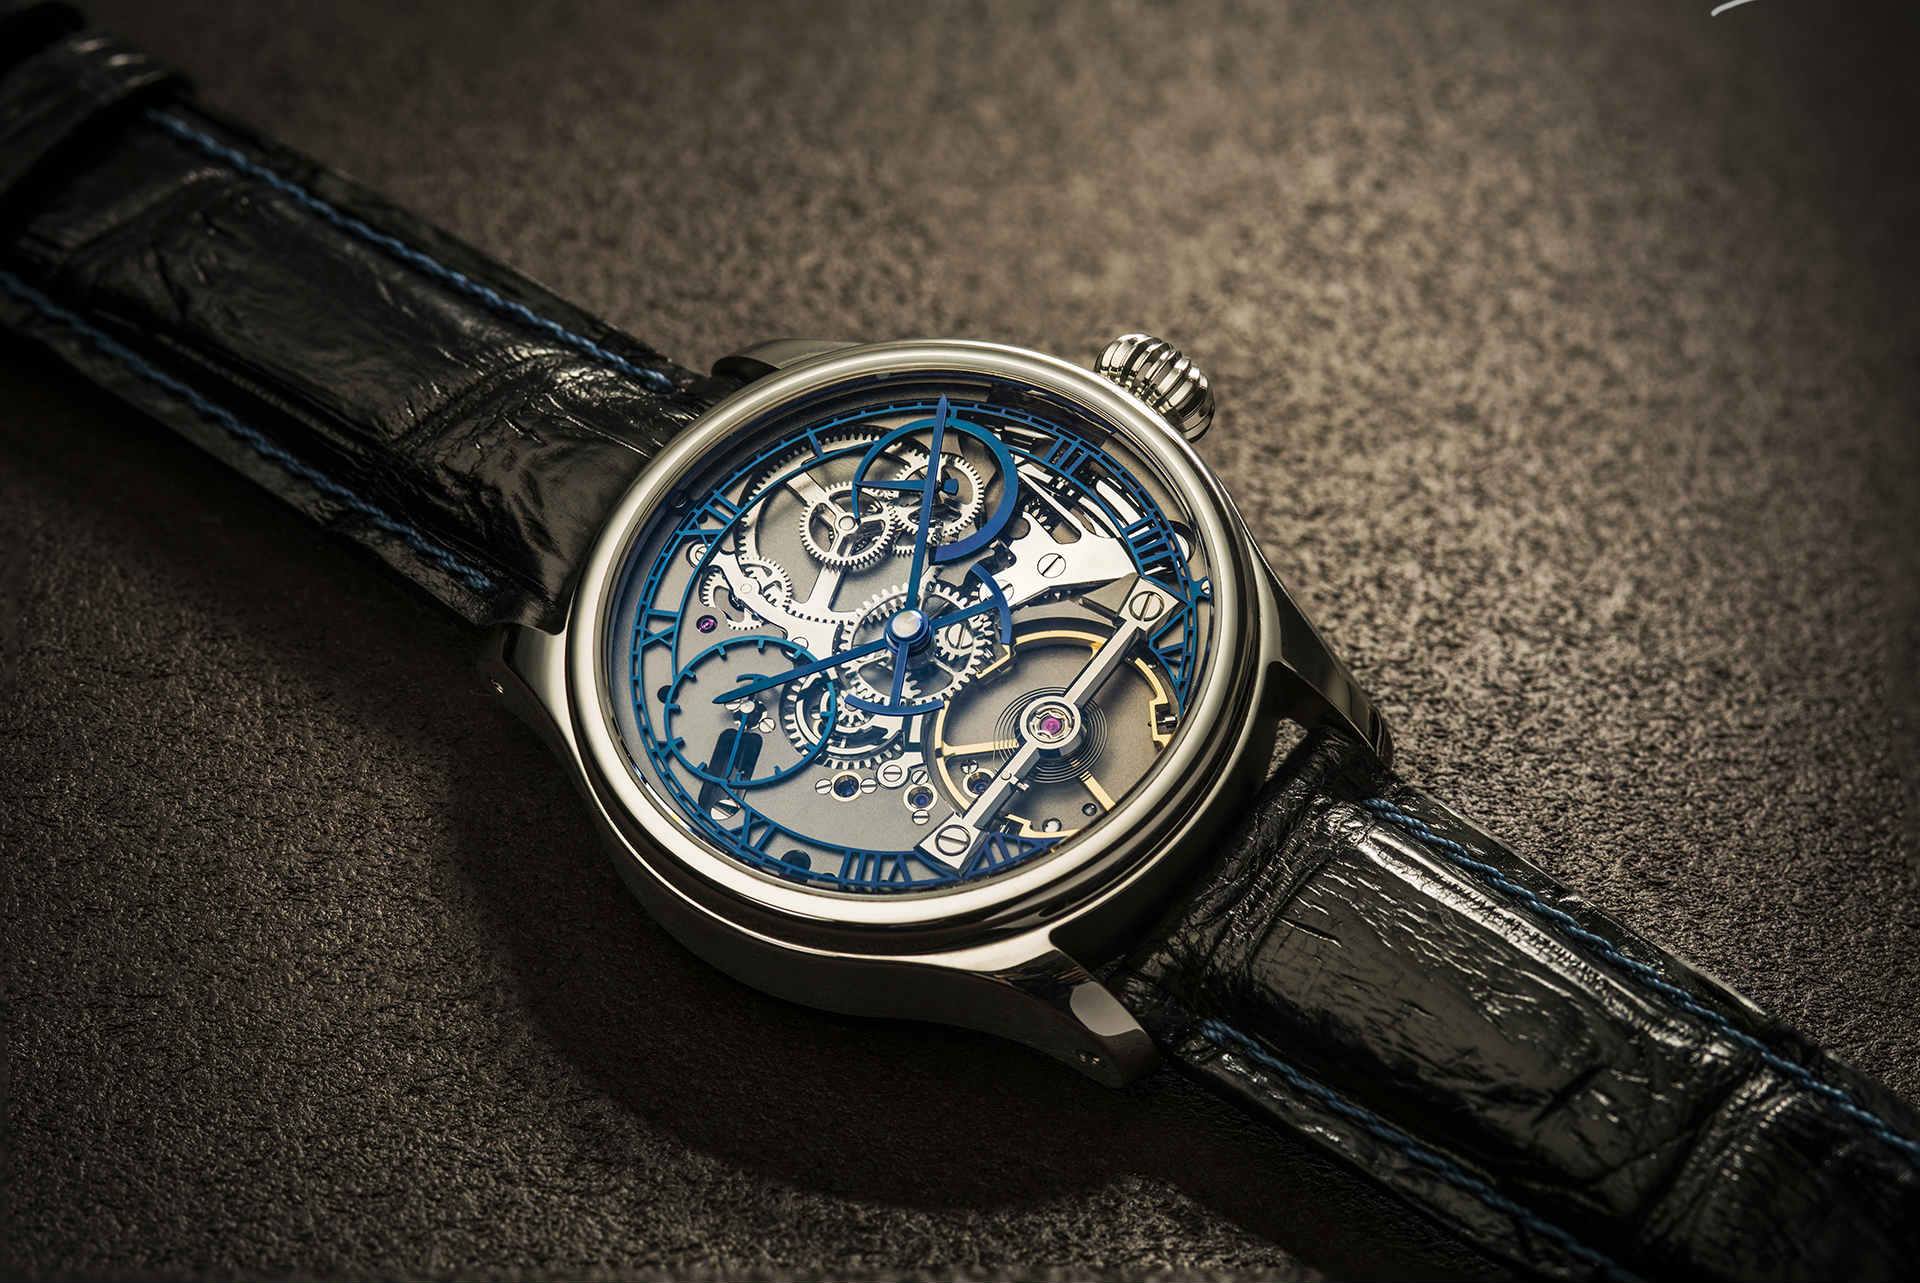 The S3 handmade English watch by Garrick Watchmakers